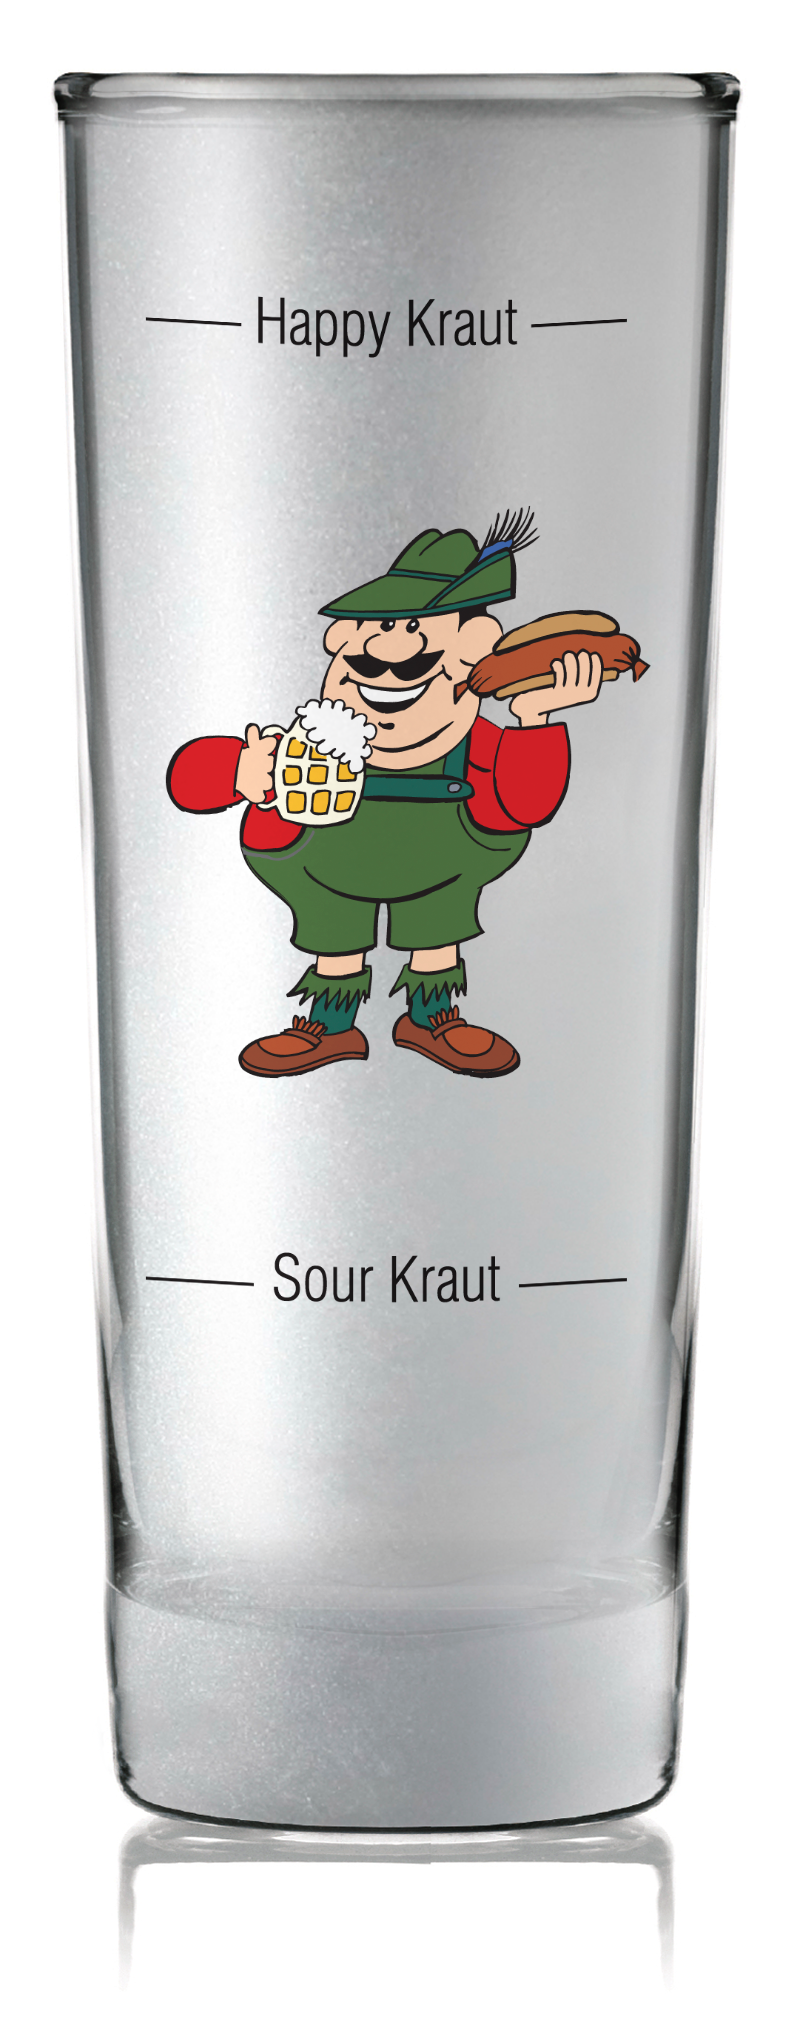 Oktoberfest Party Favor Shooter Grouchy German Clear - Alcohol, Barware, Clear, Collectibles, Drinkware, Frosted, German, Germany, Glass, Home & Garden, PS- Oktoberfest Party Favors, PS-Party Favors, PS-Party Favors German, Shot Glasses, Shots-Glass, SY: Grouchy German, Tableware - 2 - 3